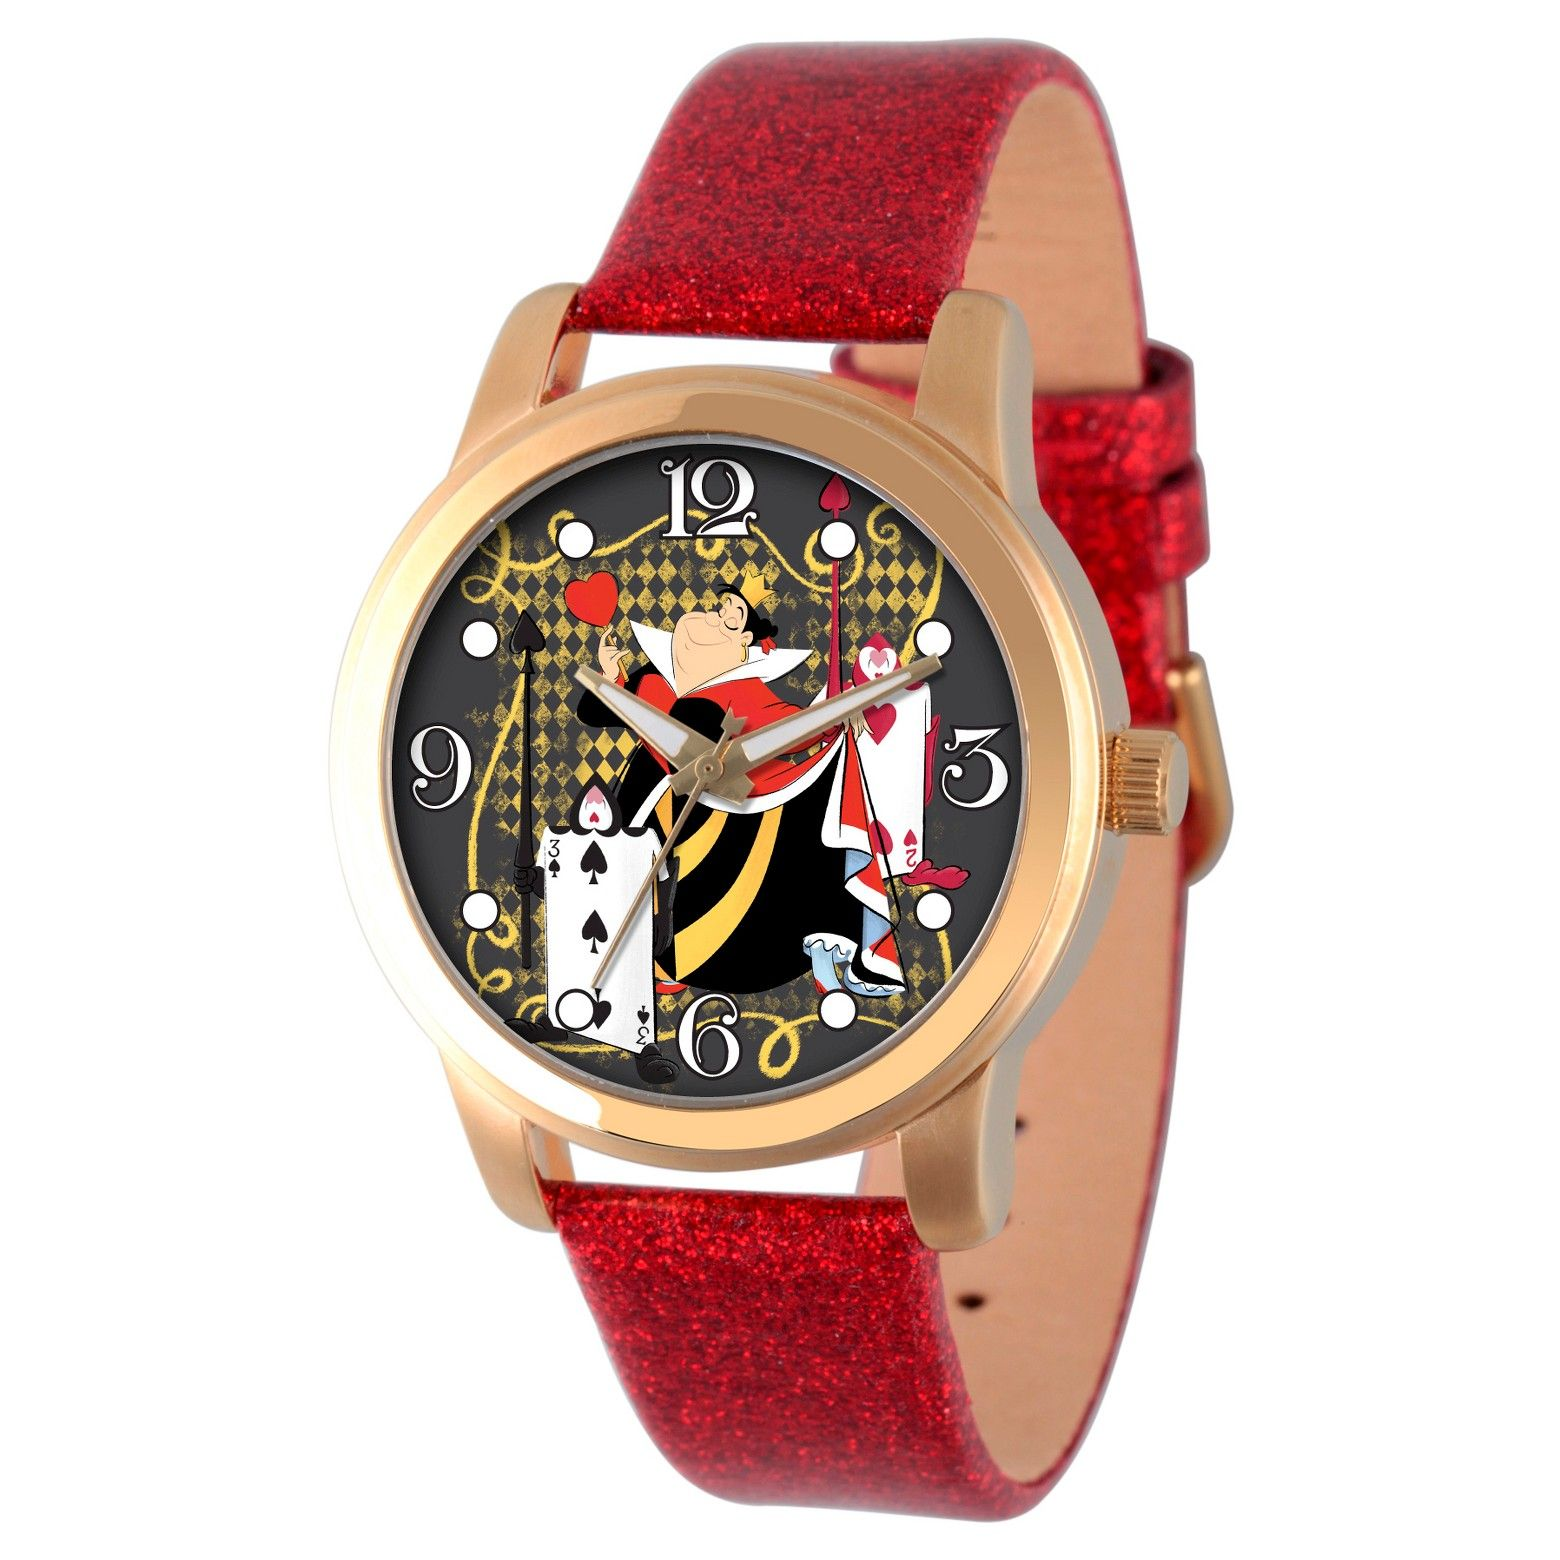 Women's Disney Alice in Wonderland Gold Alloy Watch with the Queen of Hearts  #affiliate